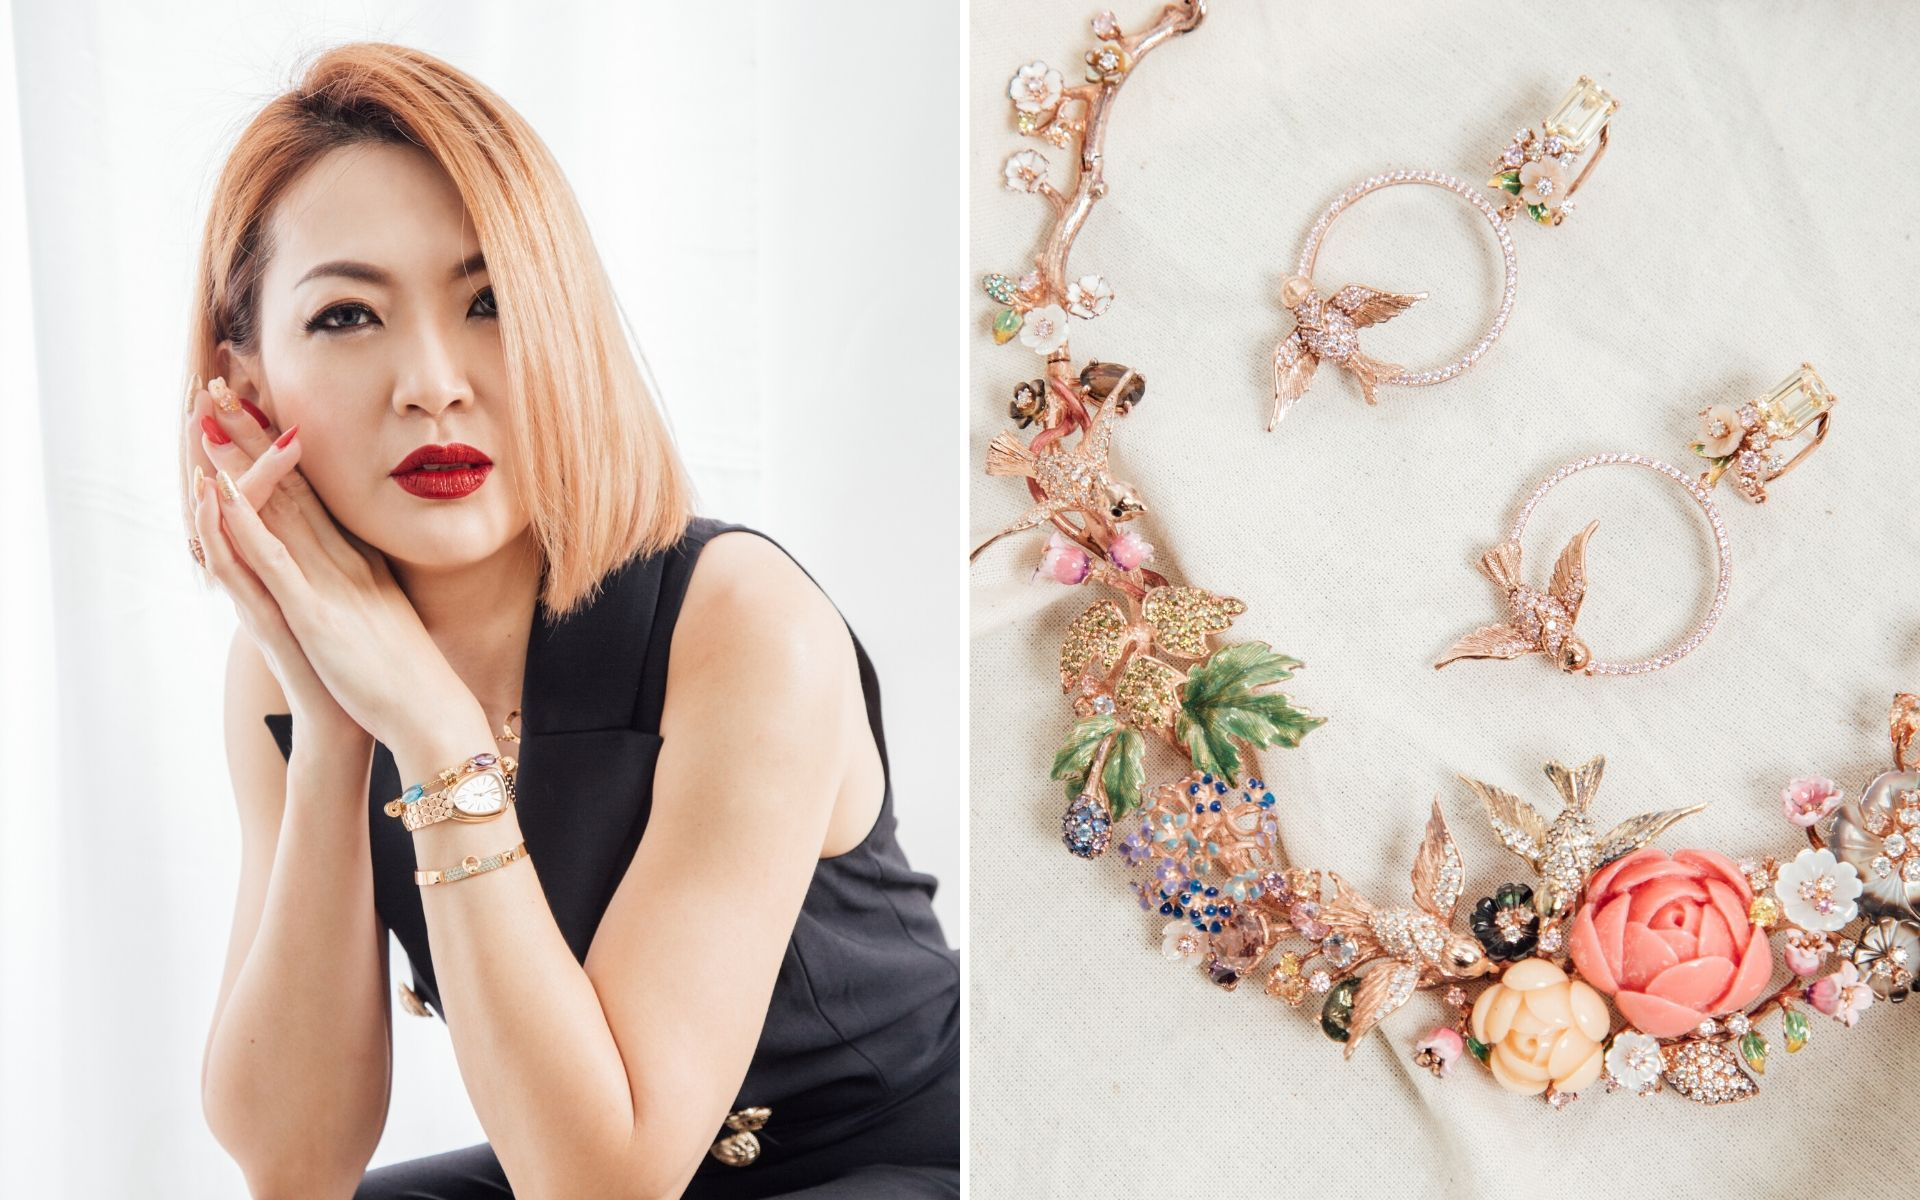 Style Profile: Les Jardin's Cherrie Chin And Her Love Of Jewellery